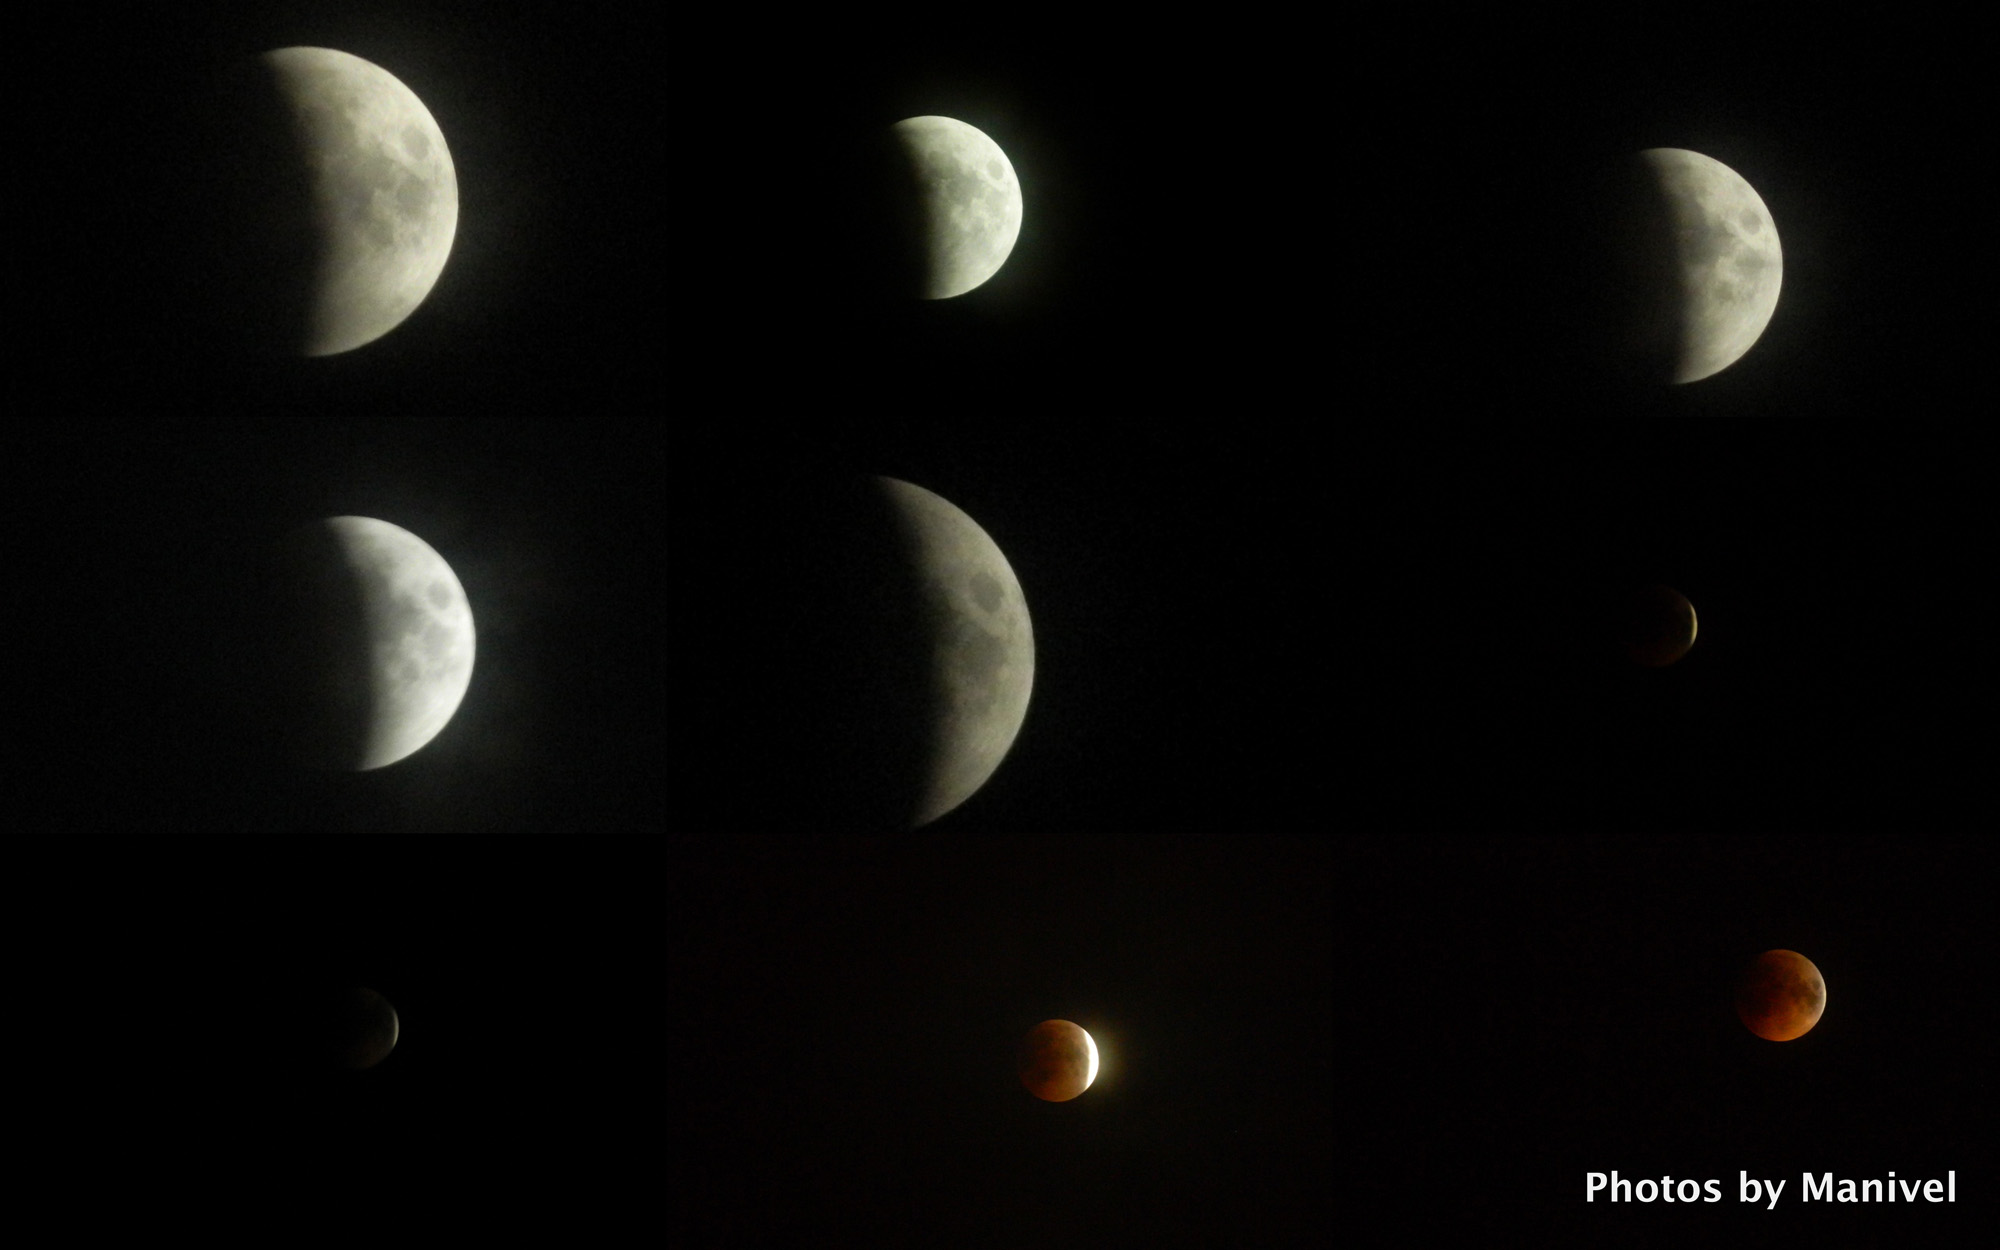 Total Lunar Eclipse of June 15, 2011: India